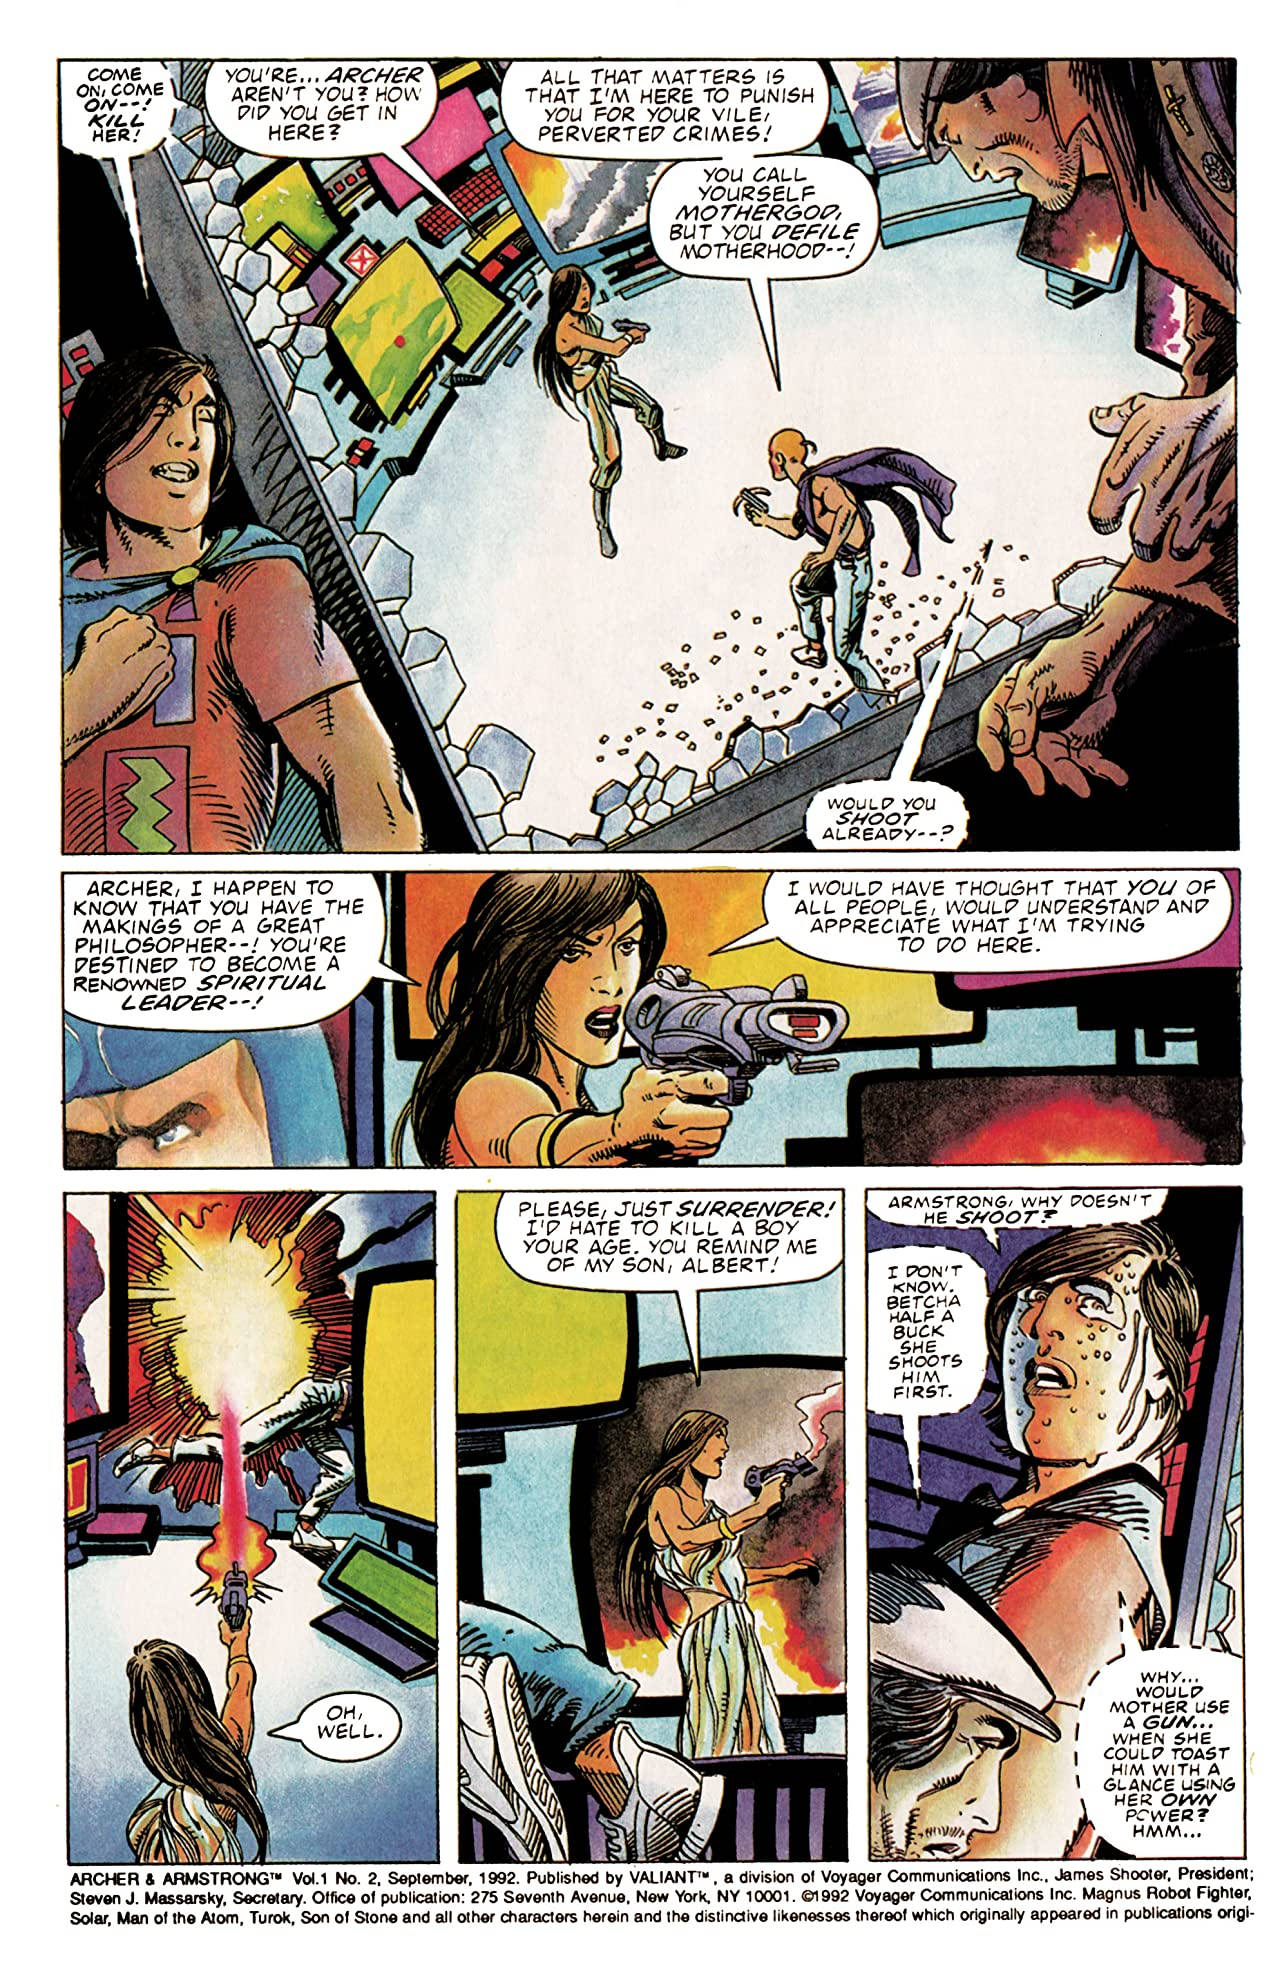 Archer & Armstrong (1992-1994) #2